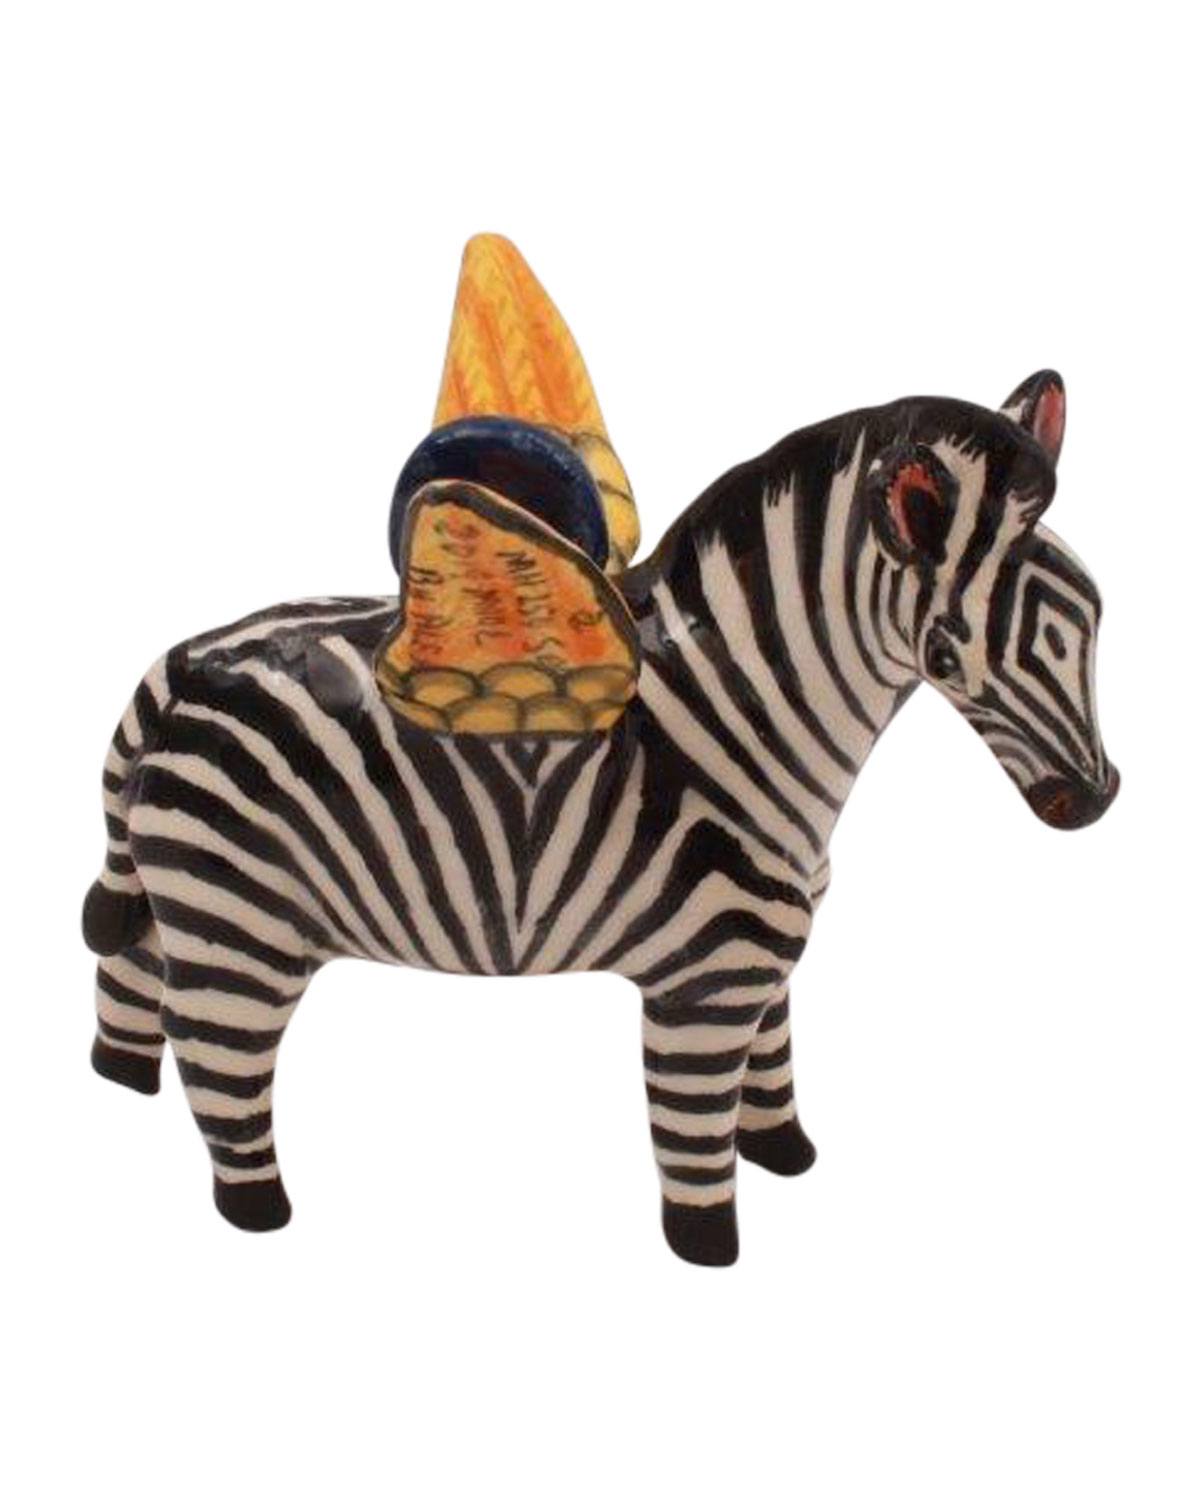 Ardmore Ceramic Art Zebra Ornament